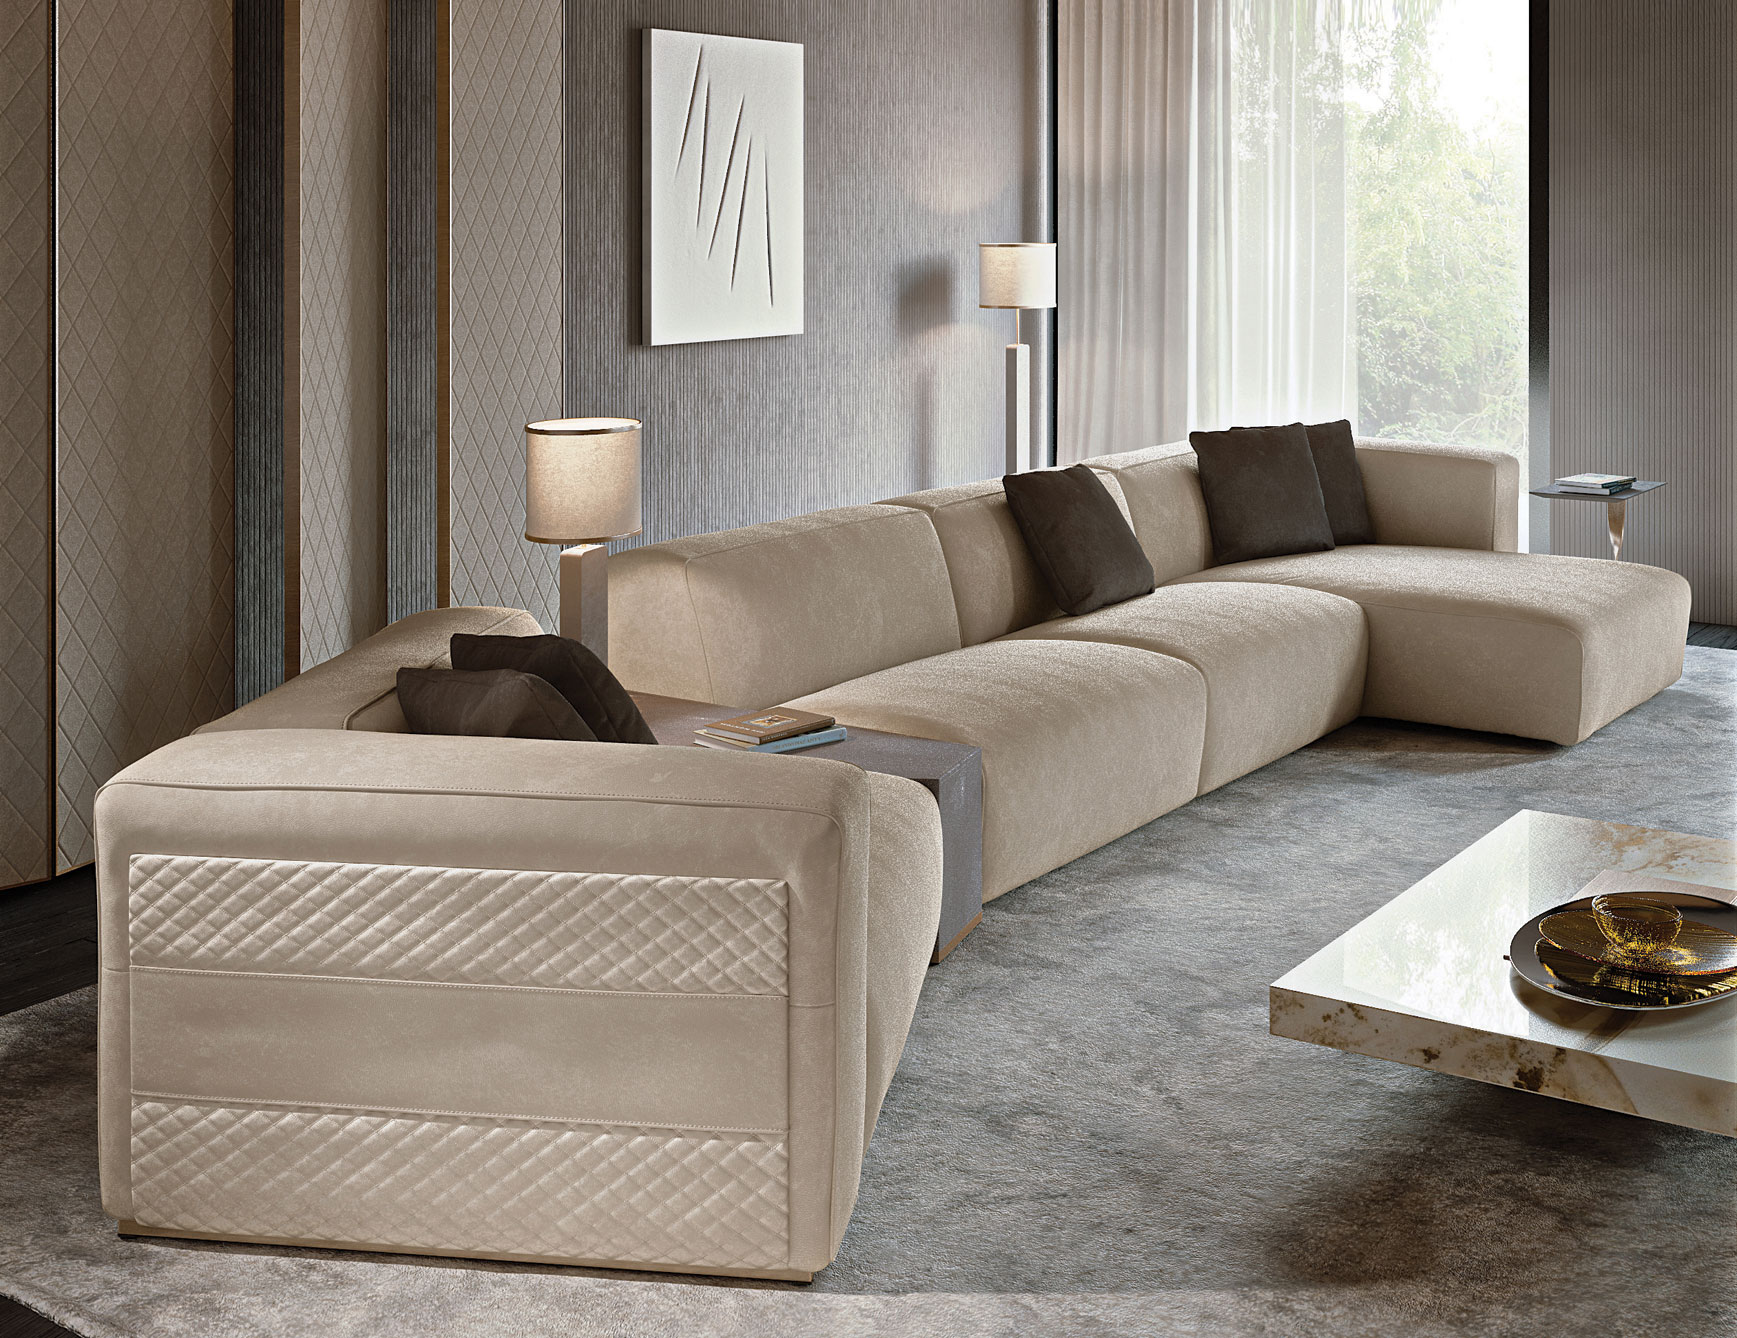 Our Choice of Top High End Sofas Images - Home of Cat ...